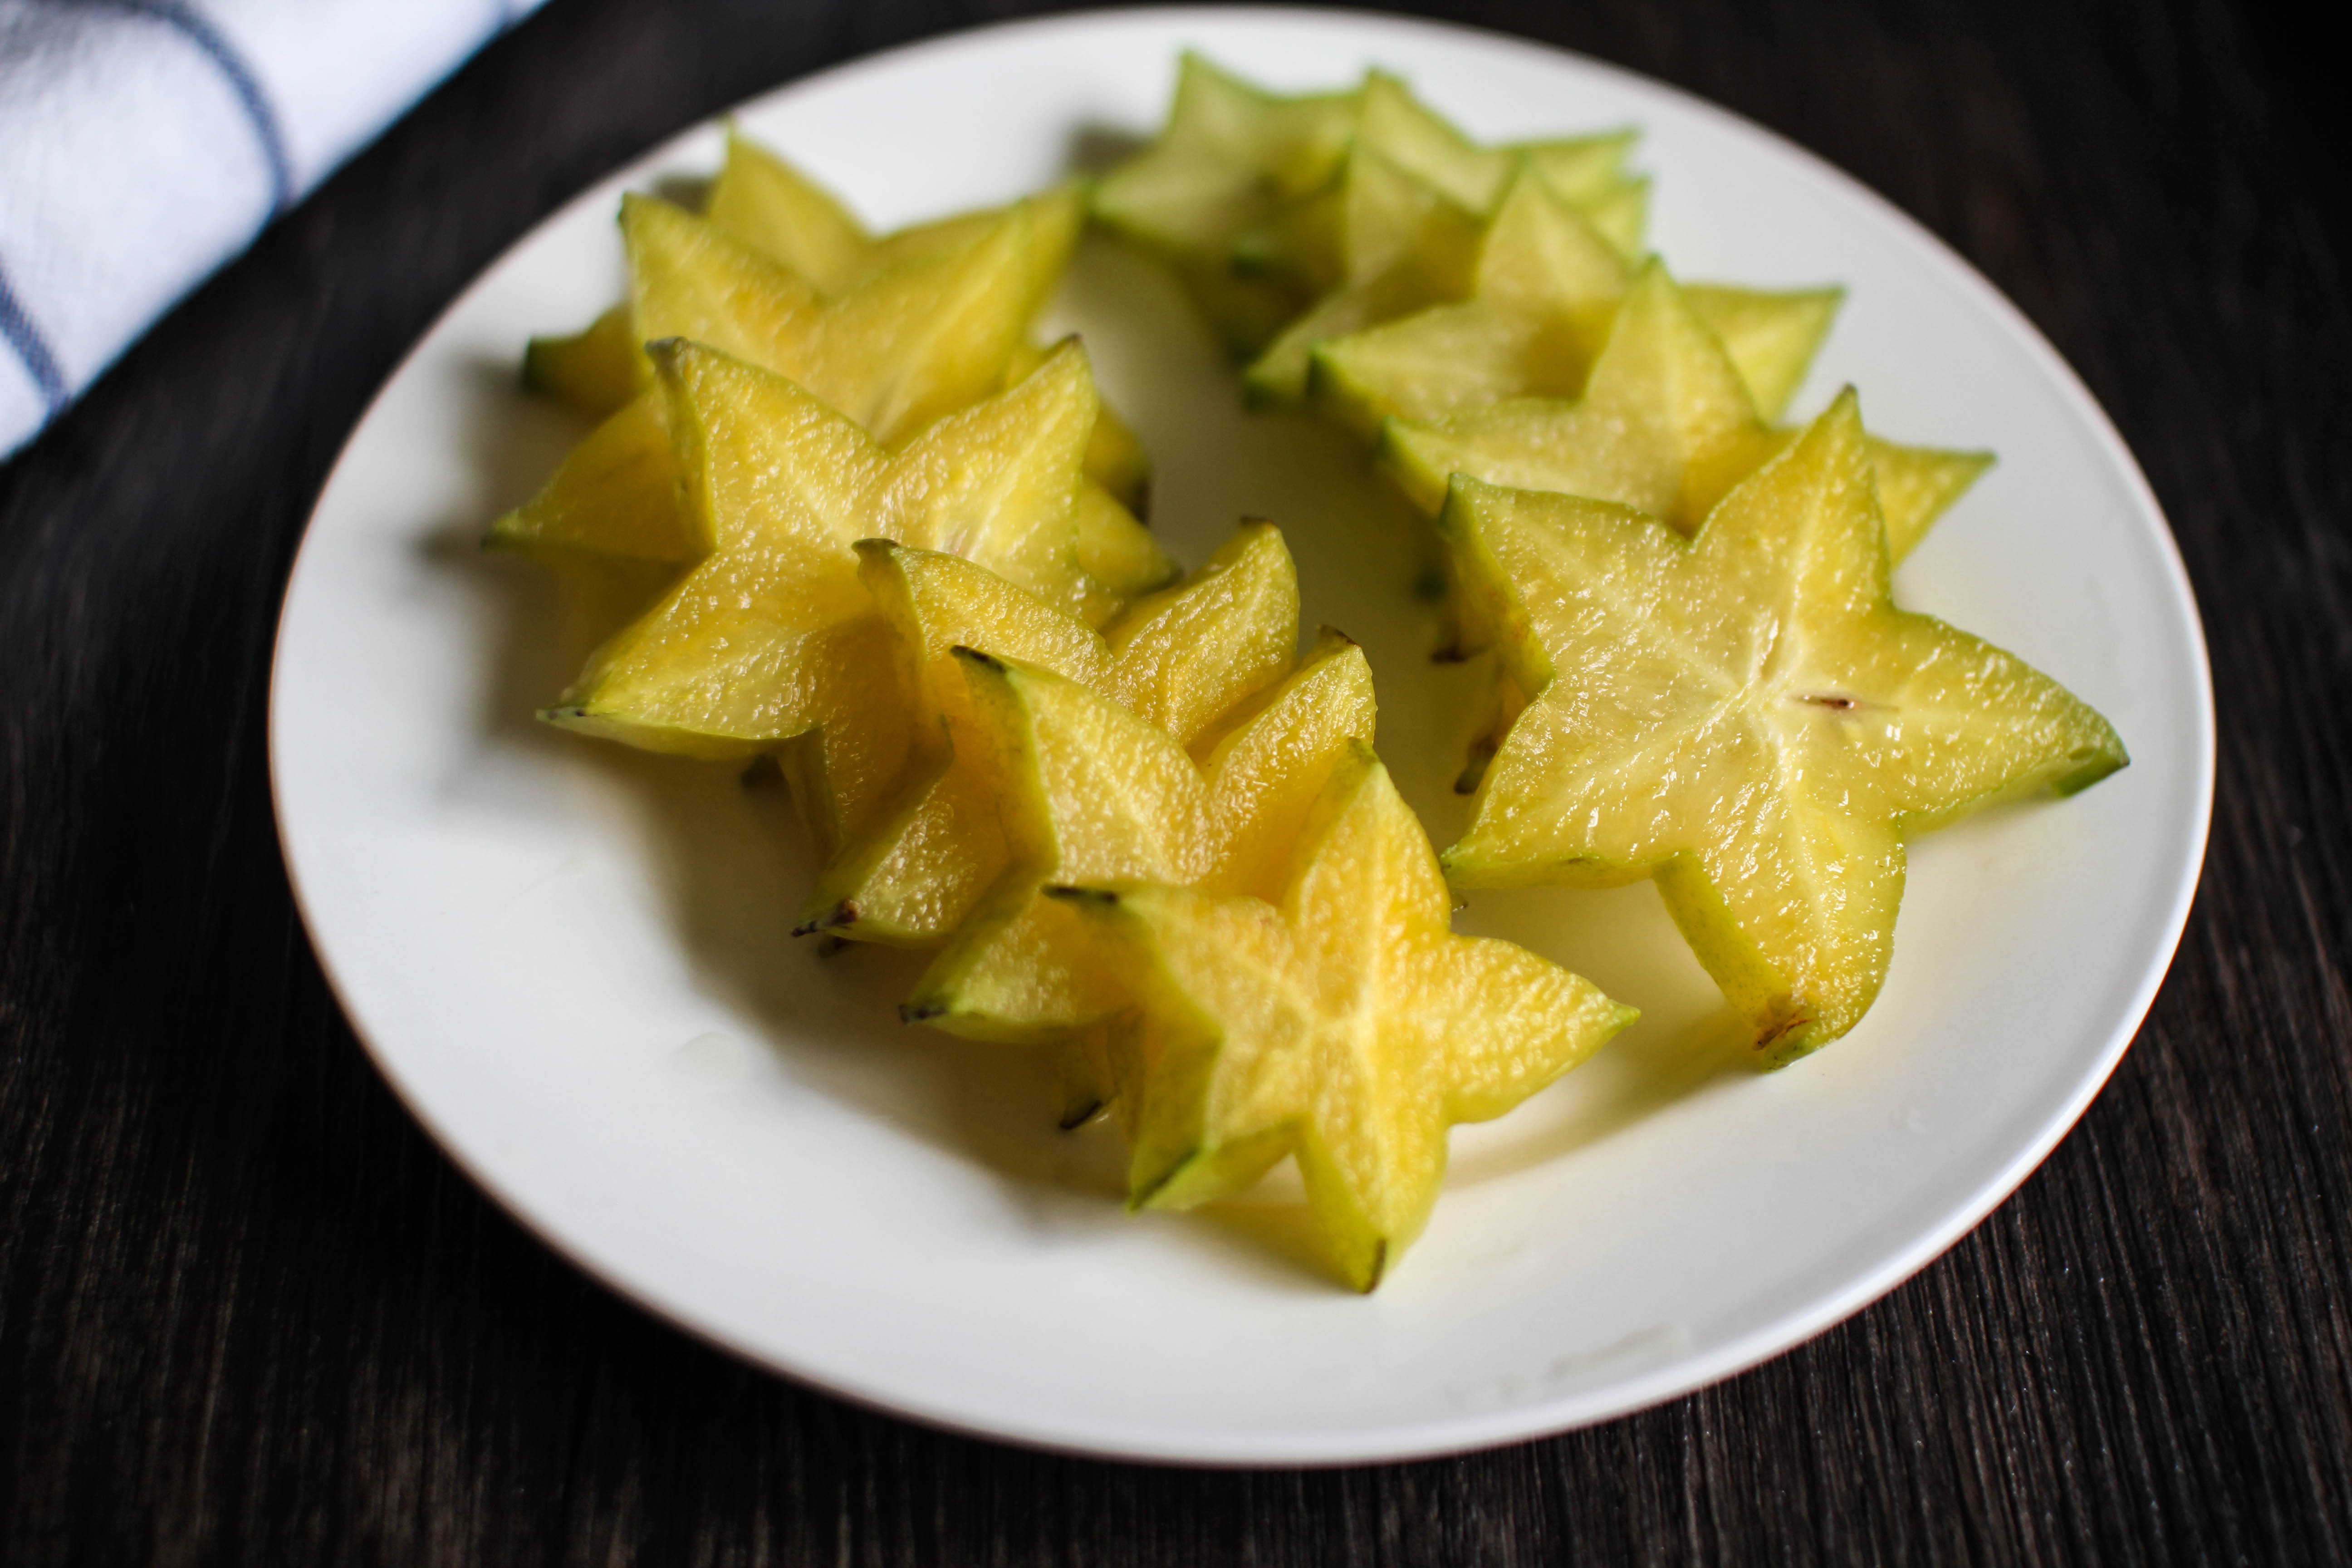 how to cut a star fruit and eat it